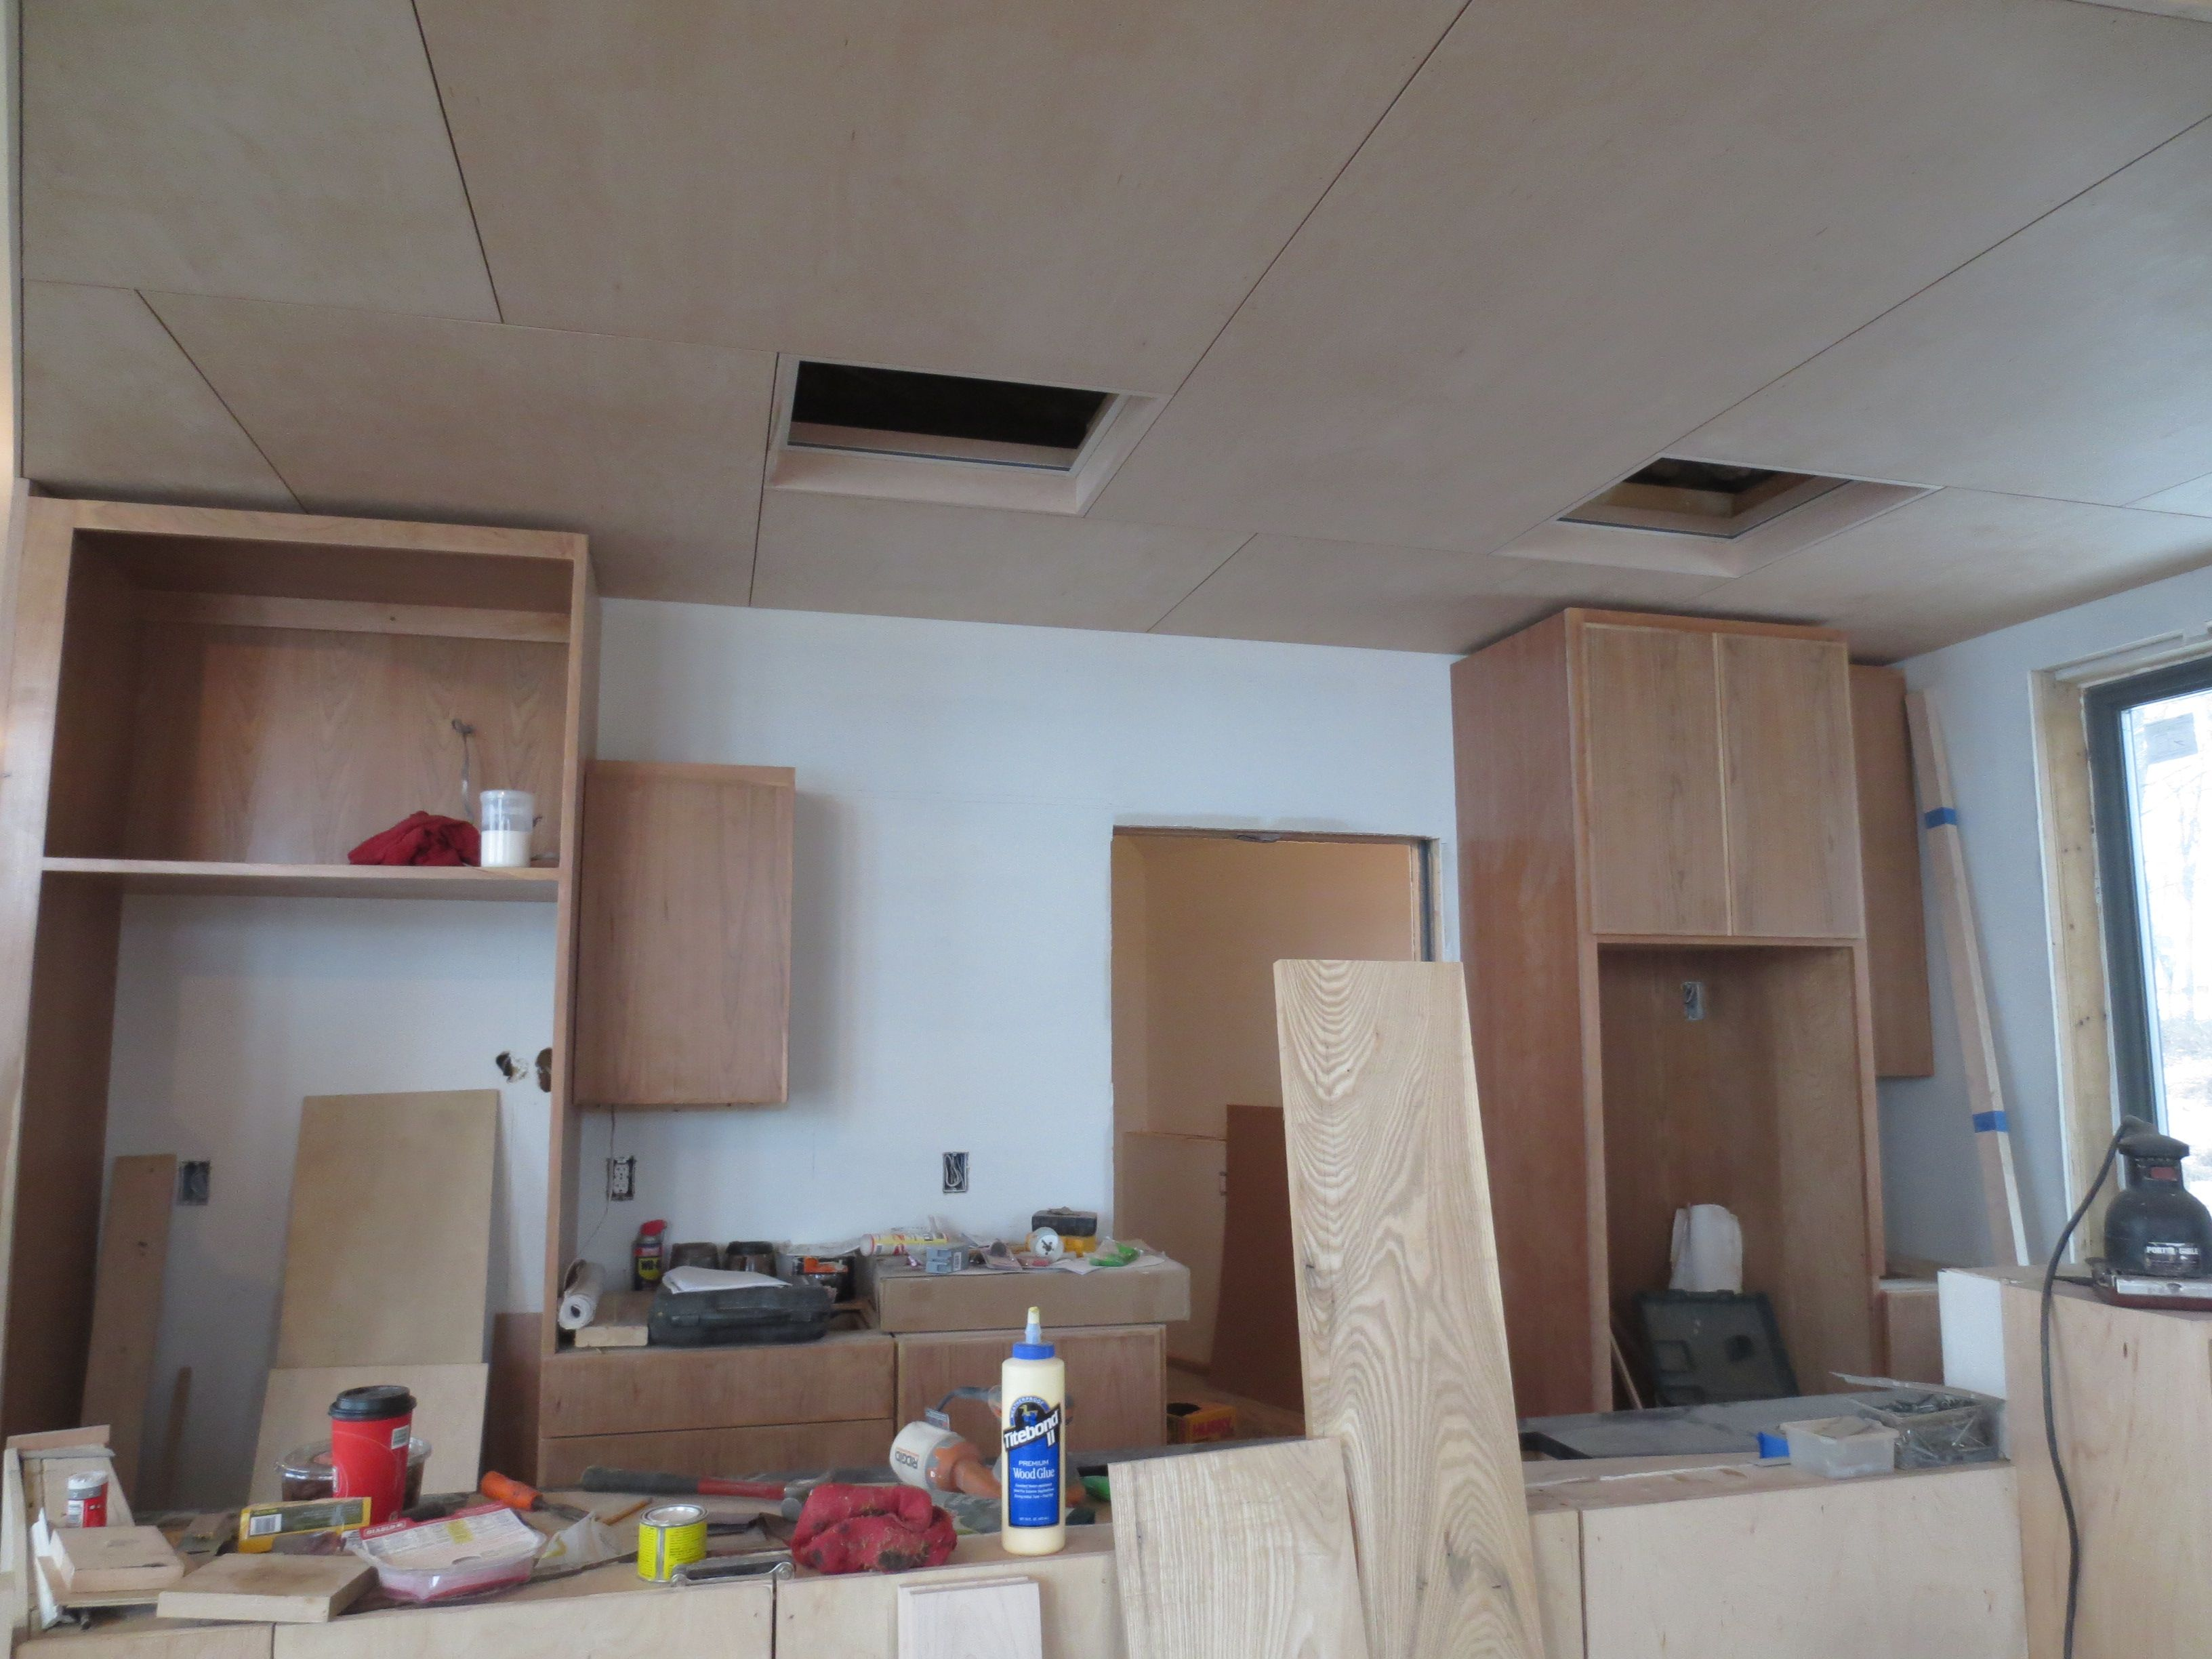 Kitchen cabinets partly in.